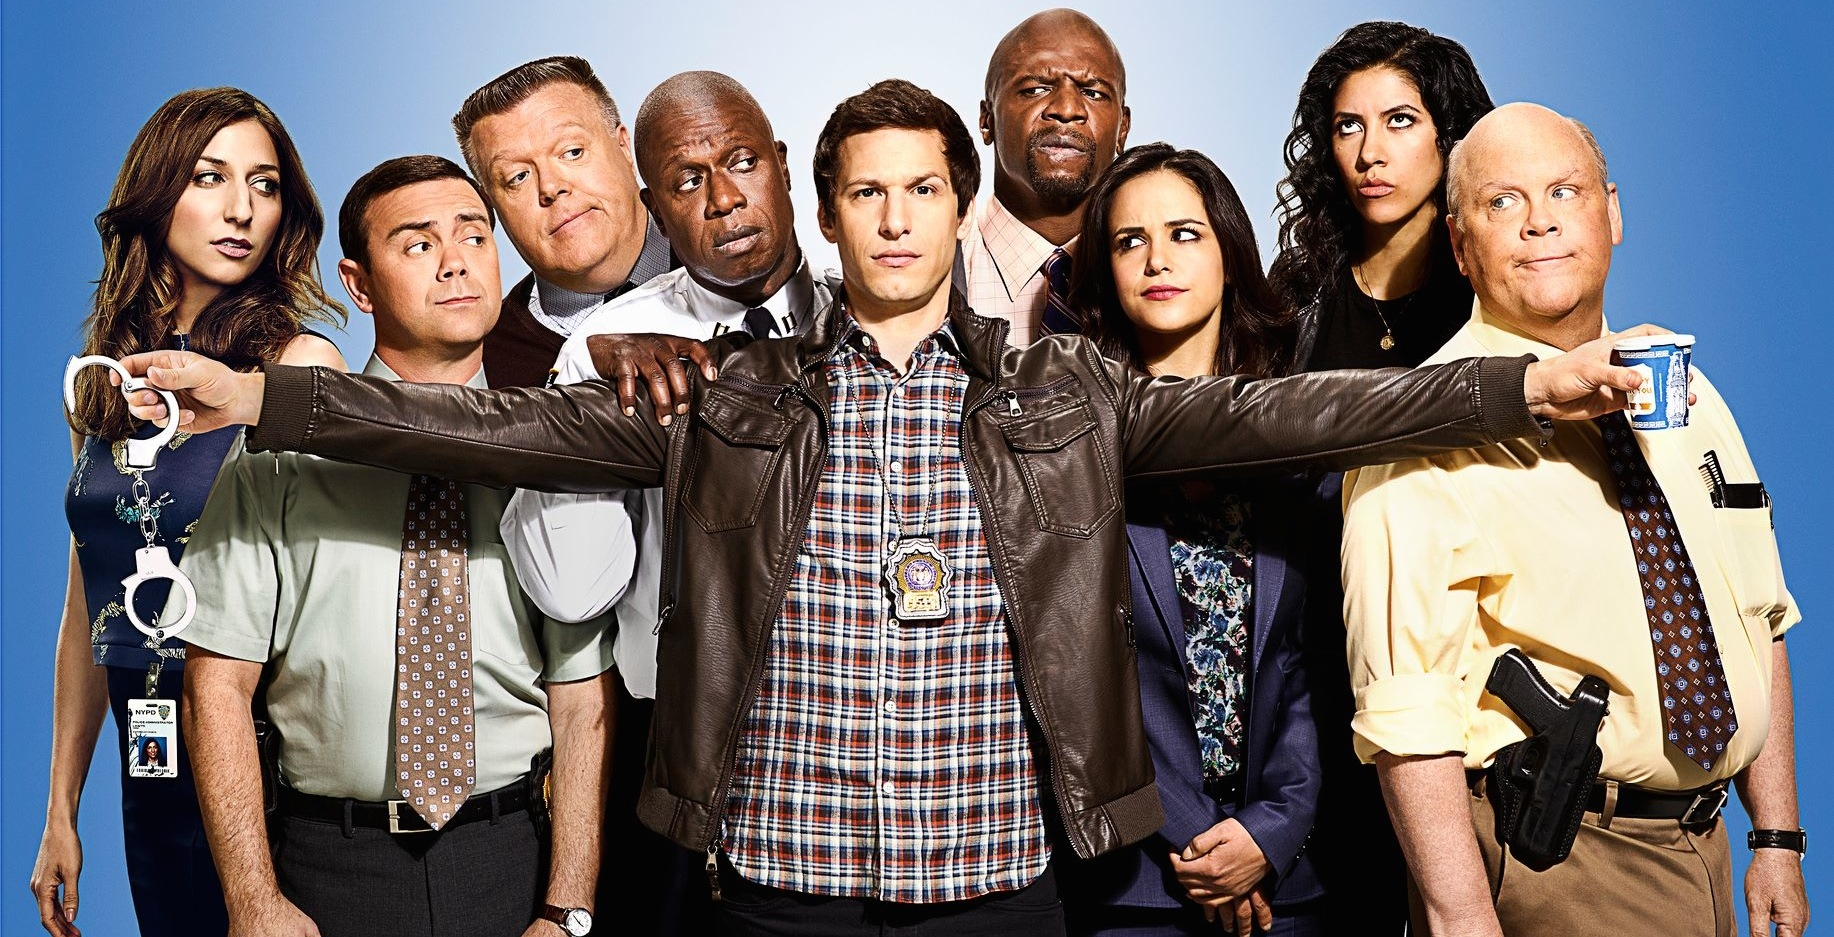 A French-Canadian adaptation of Brooklyn Nine-Nine is in the works